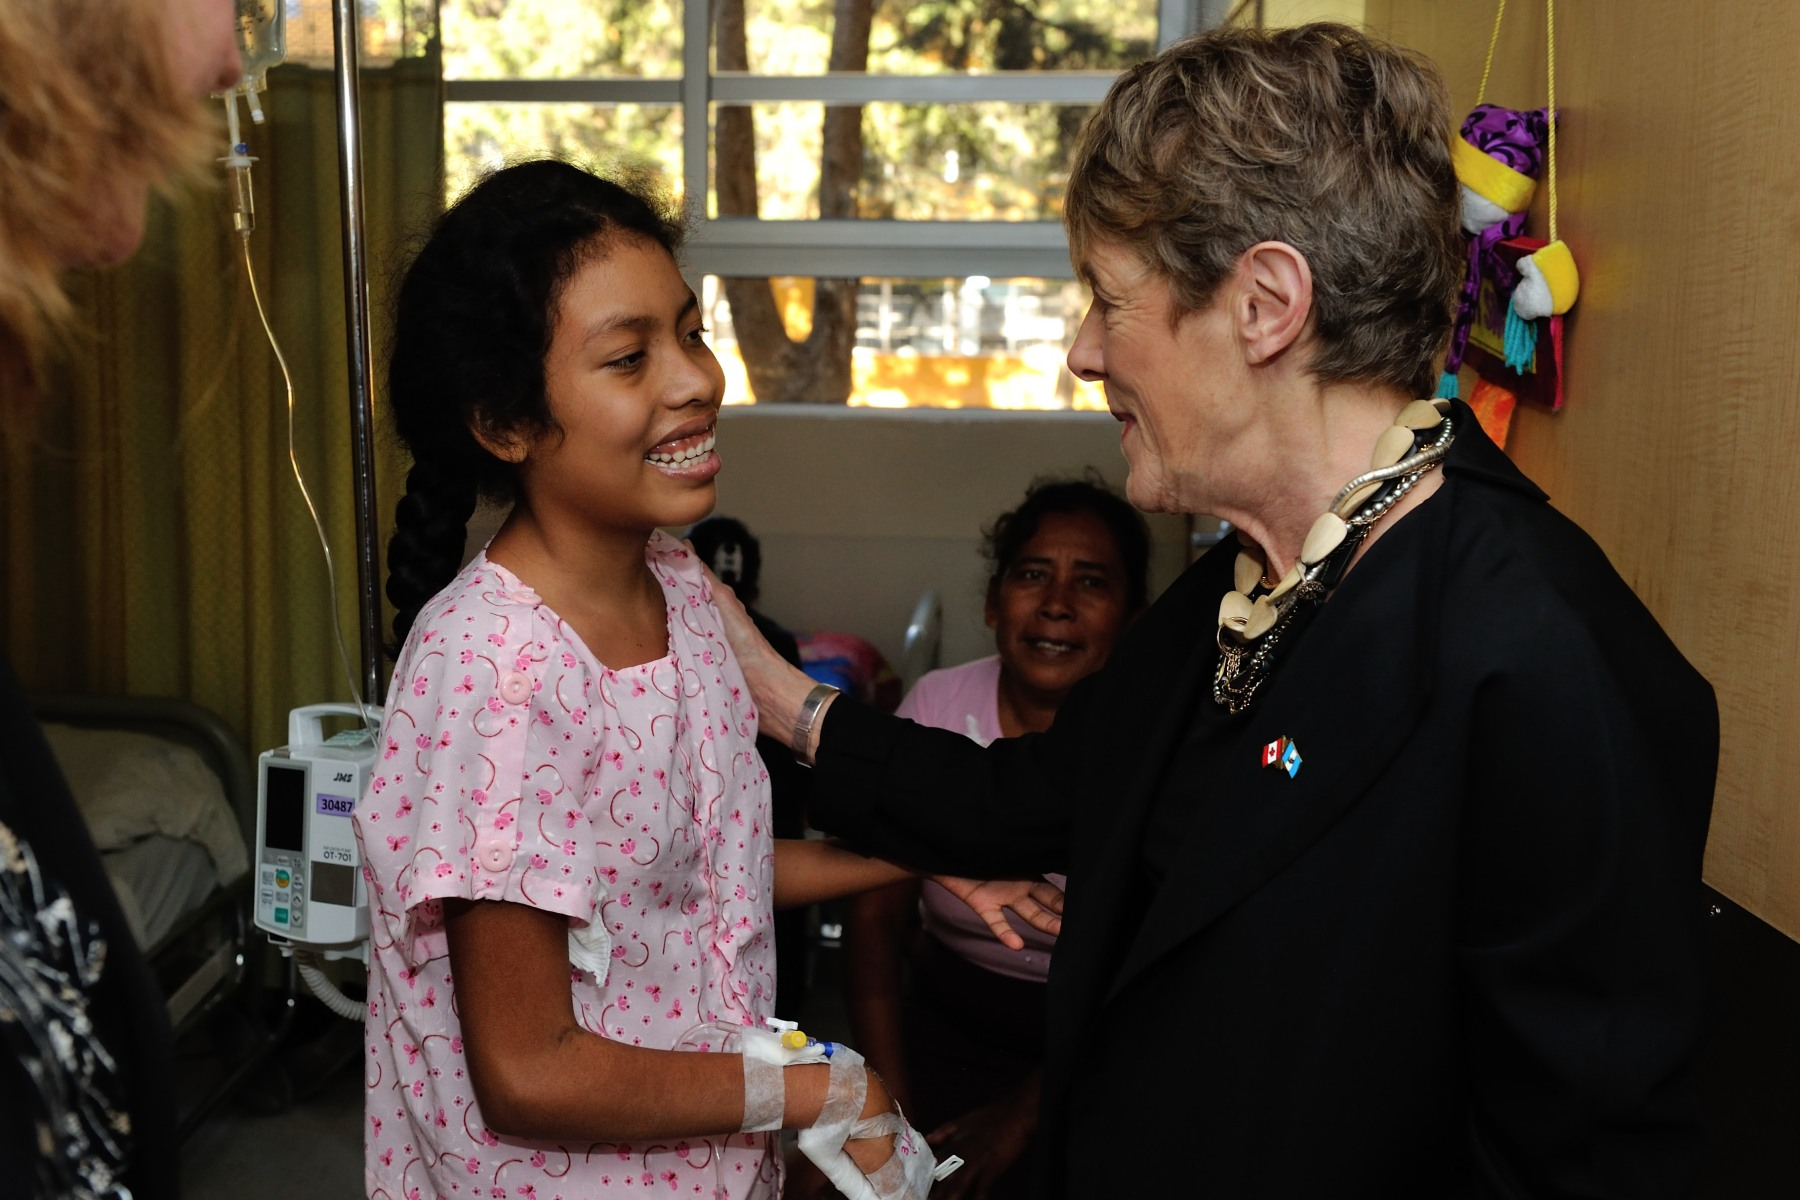 Her Excellency then met with hospitalized children. The foundation brings much-needed assistance and hope to children and families who are unable to pay for treatment. Its integral program includes the use of internationally approved treatments, intensive care, infection management, nutrition and palliative care, and supports the development of specialized activities in the psychosocial area. Additionally, it provides transportation and housing for families in need.